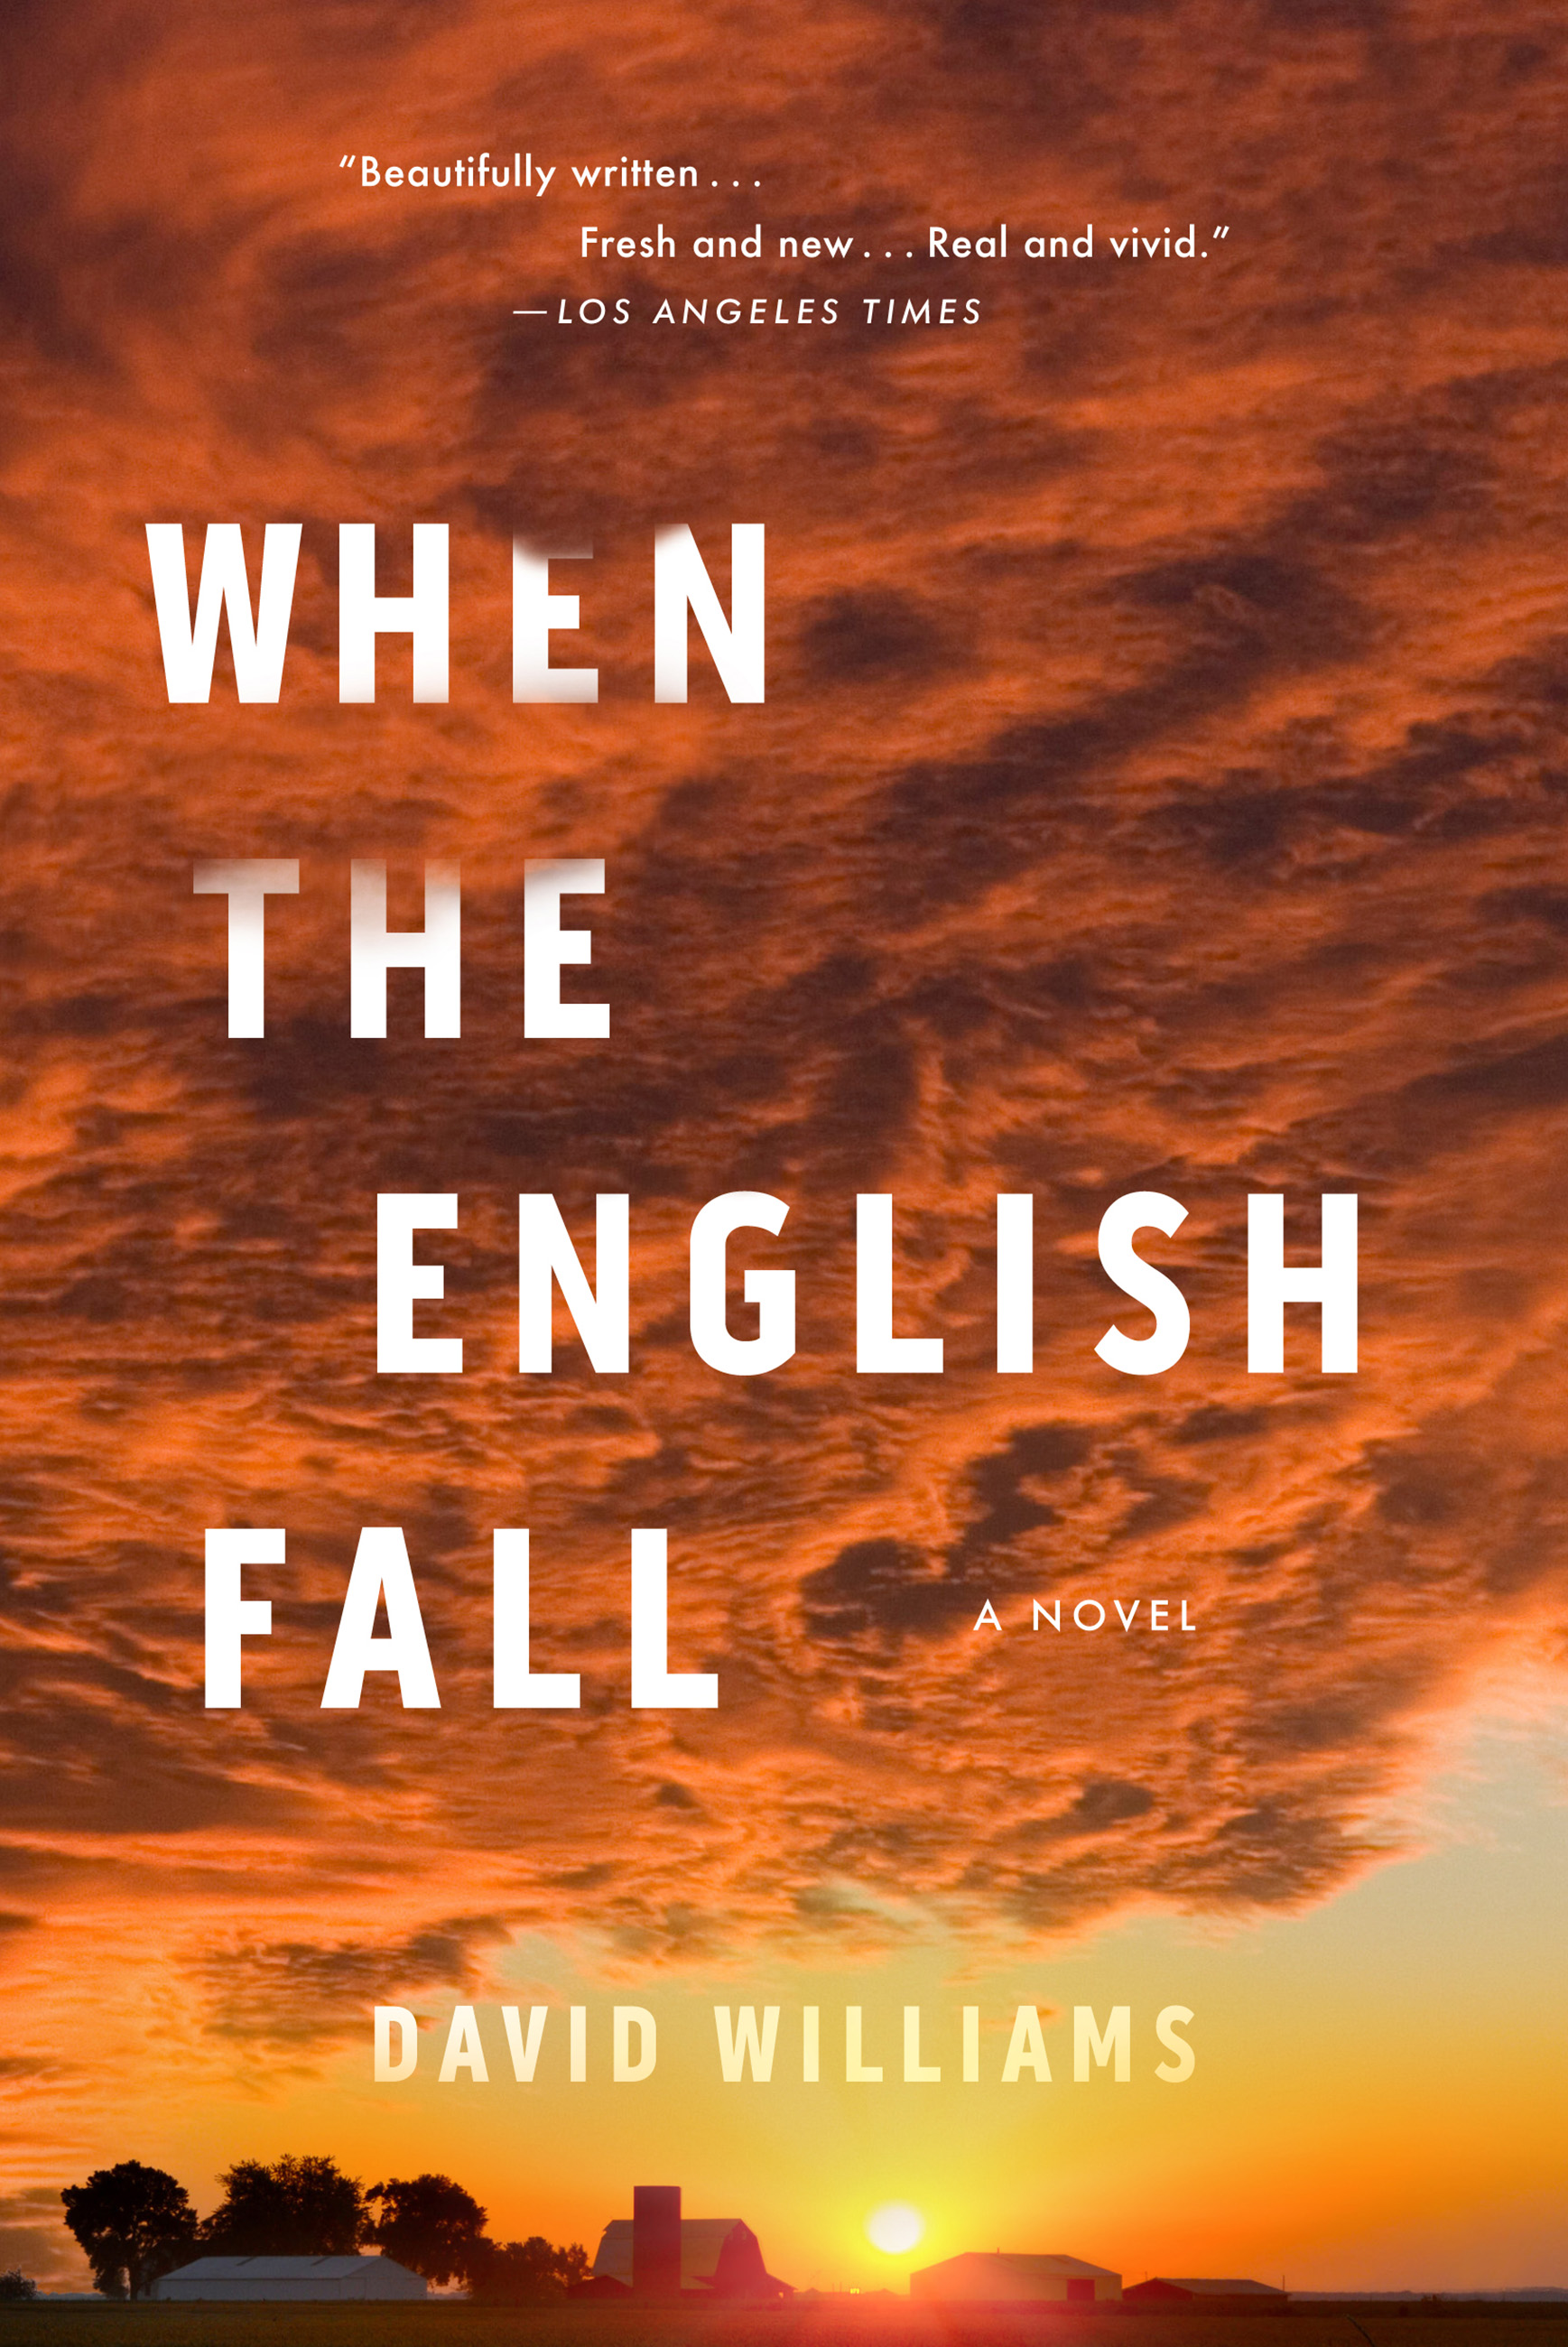 When the English fall cover image